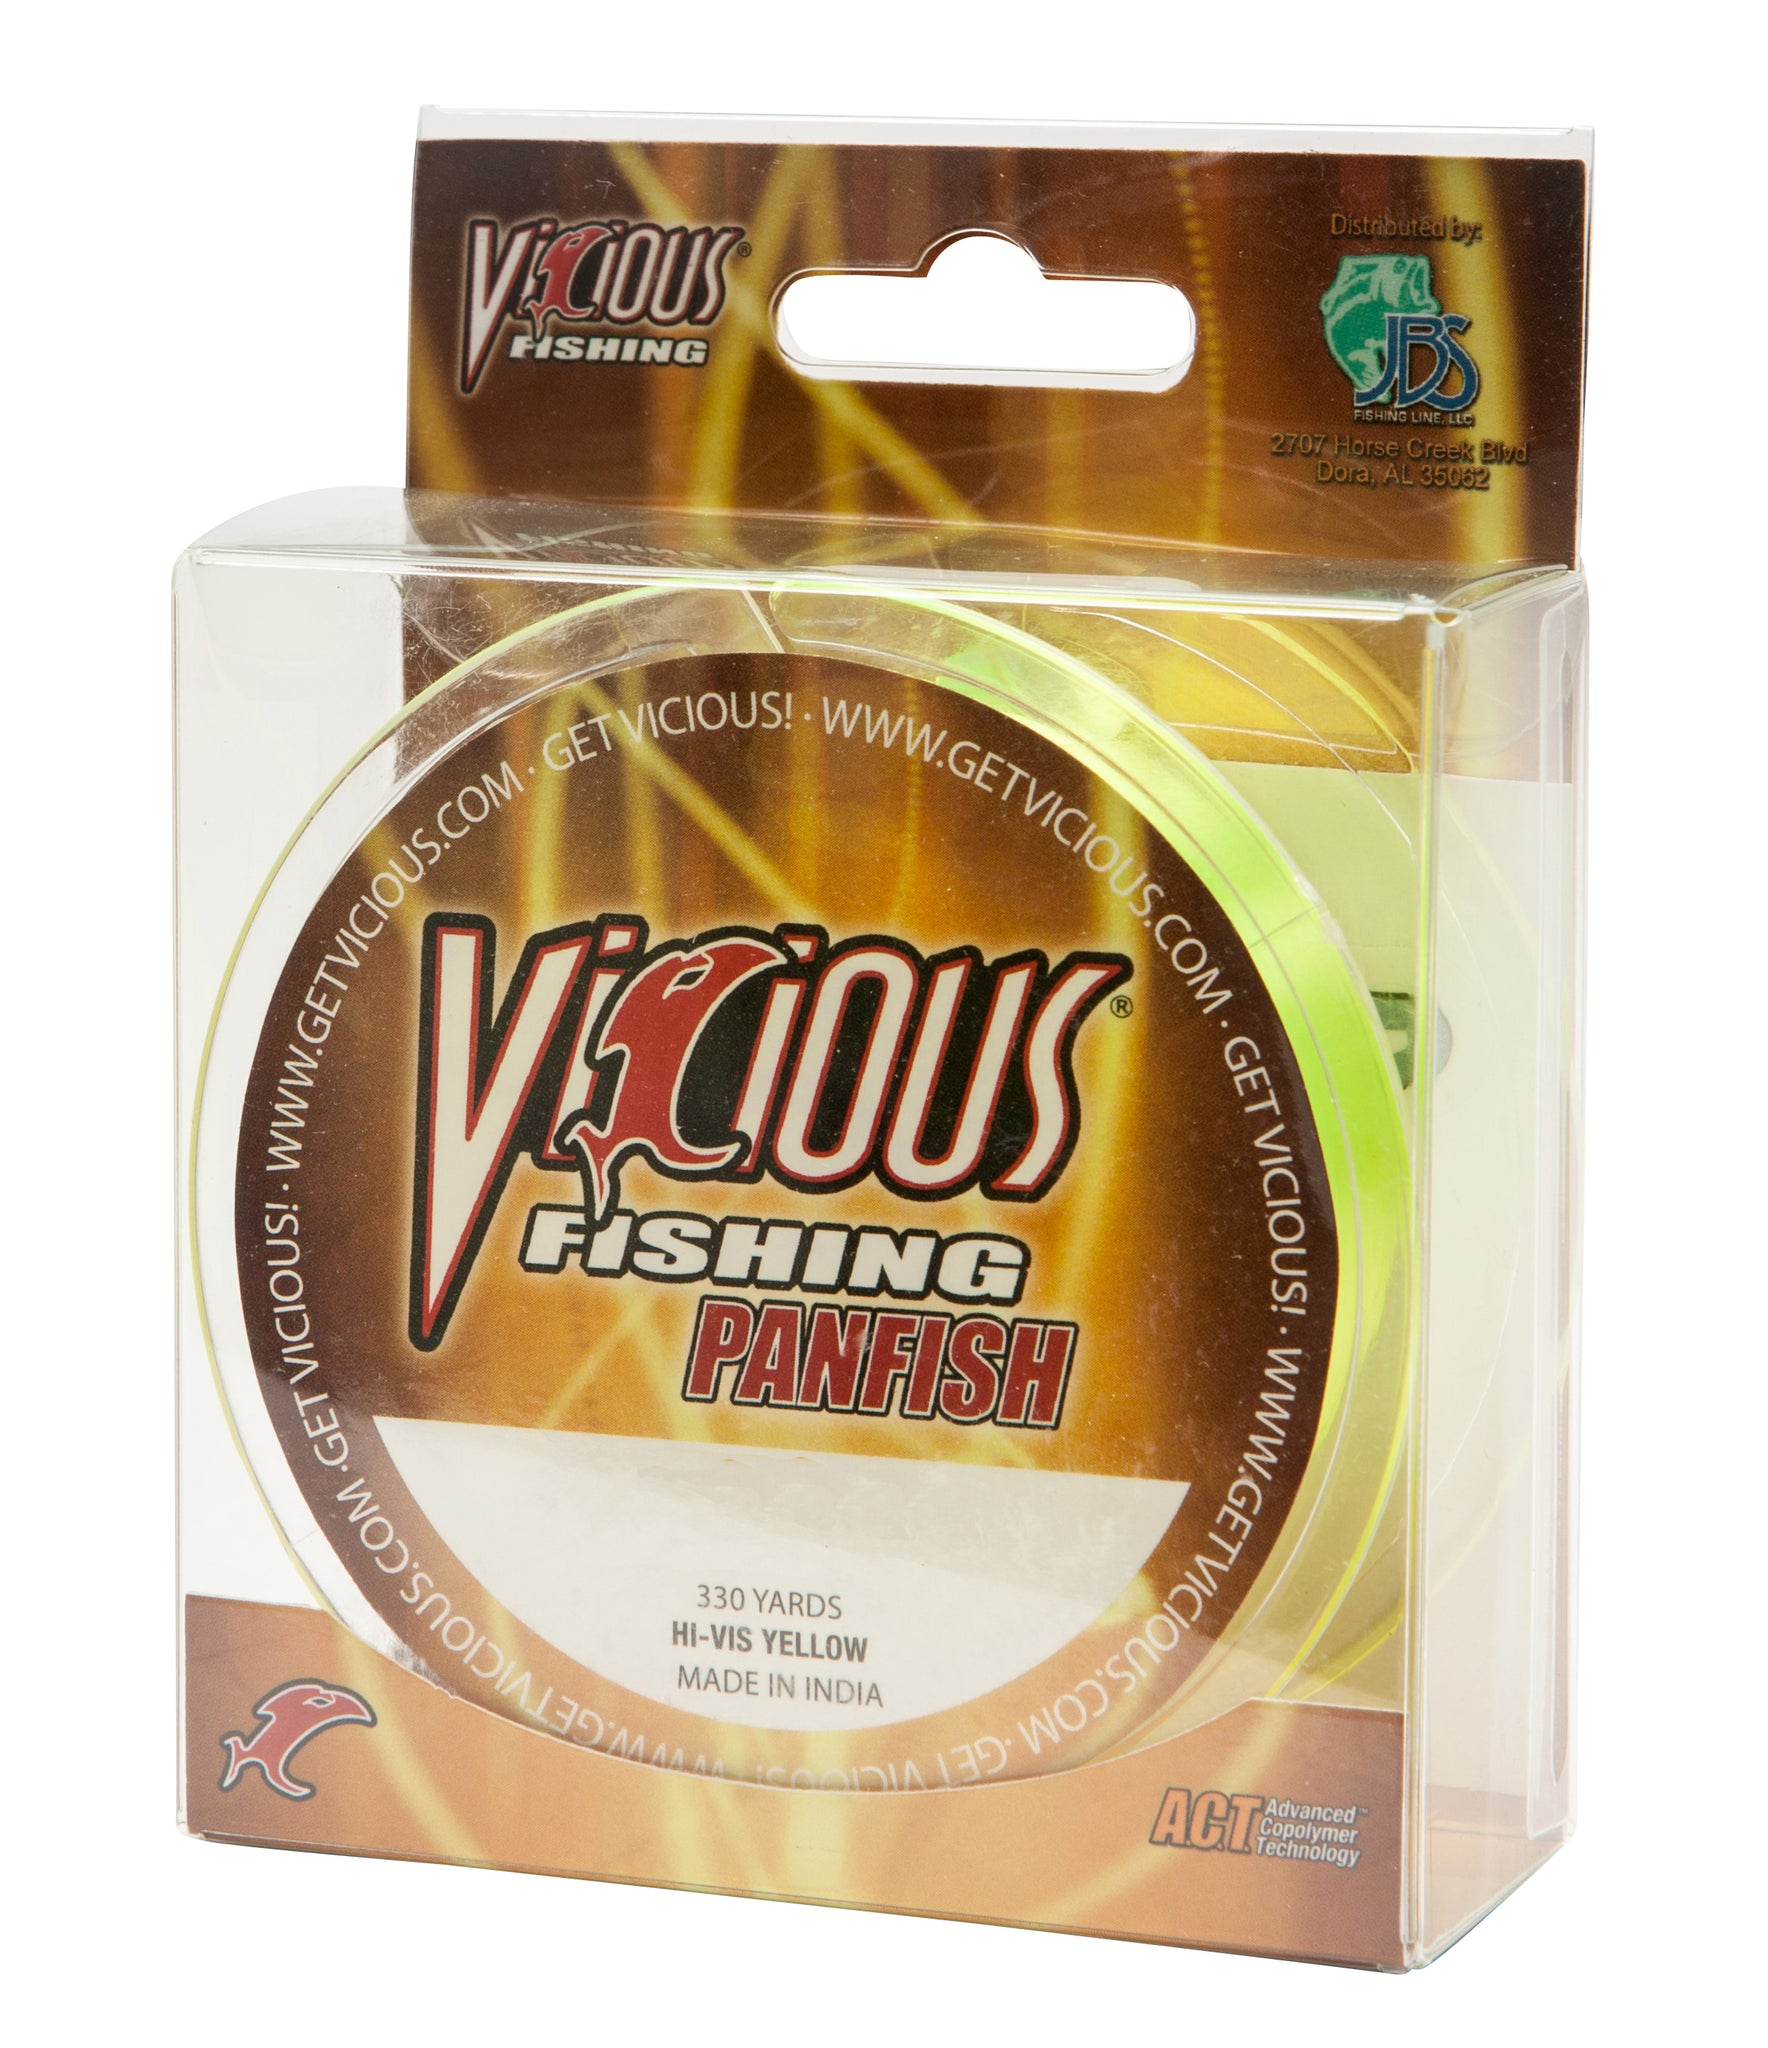 6lb Vicious Hi-Vis Yellow Panfish -  330 Yards